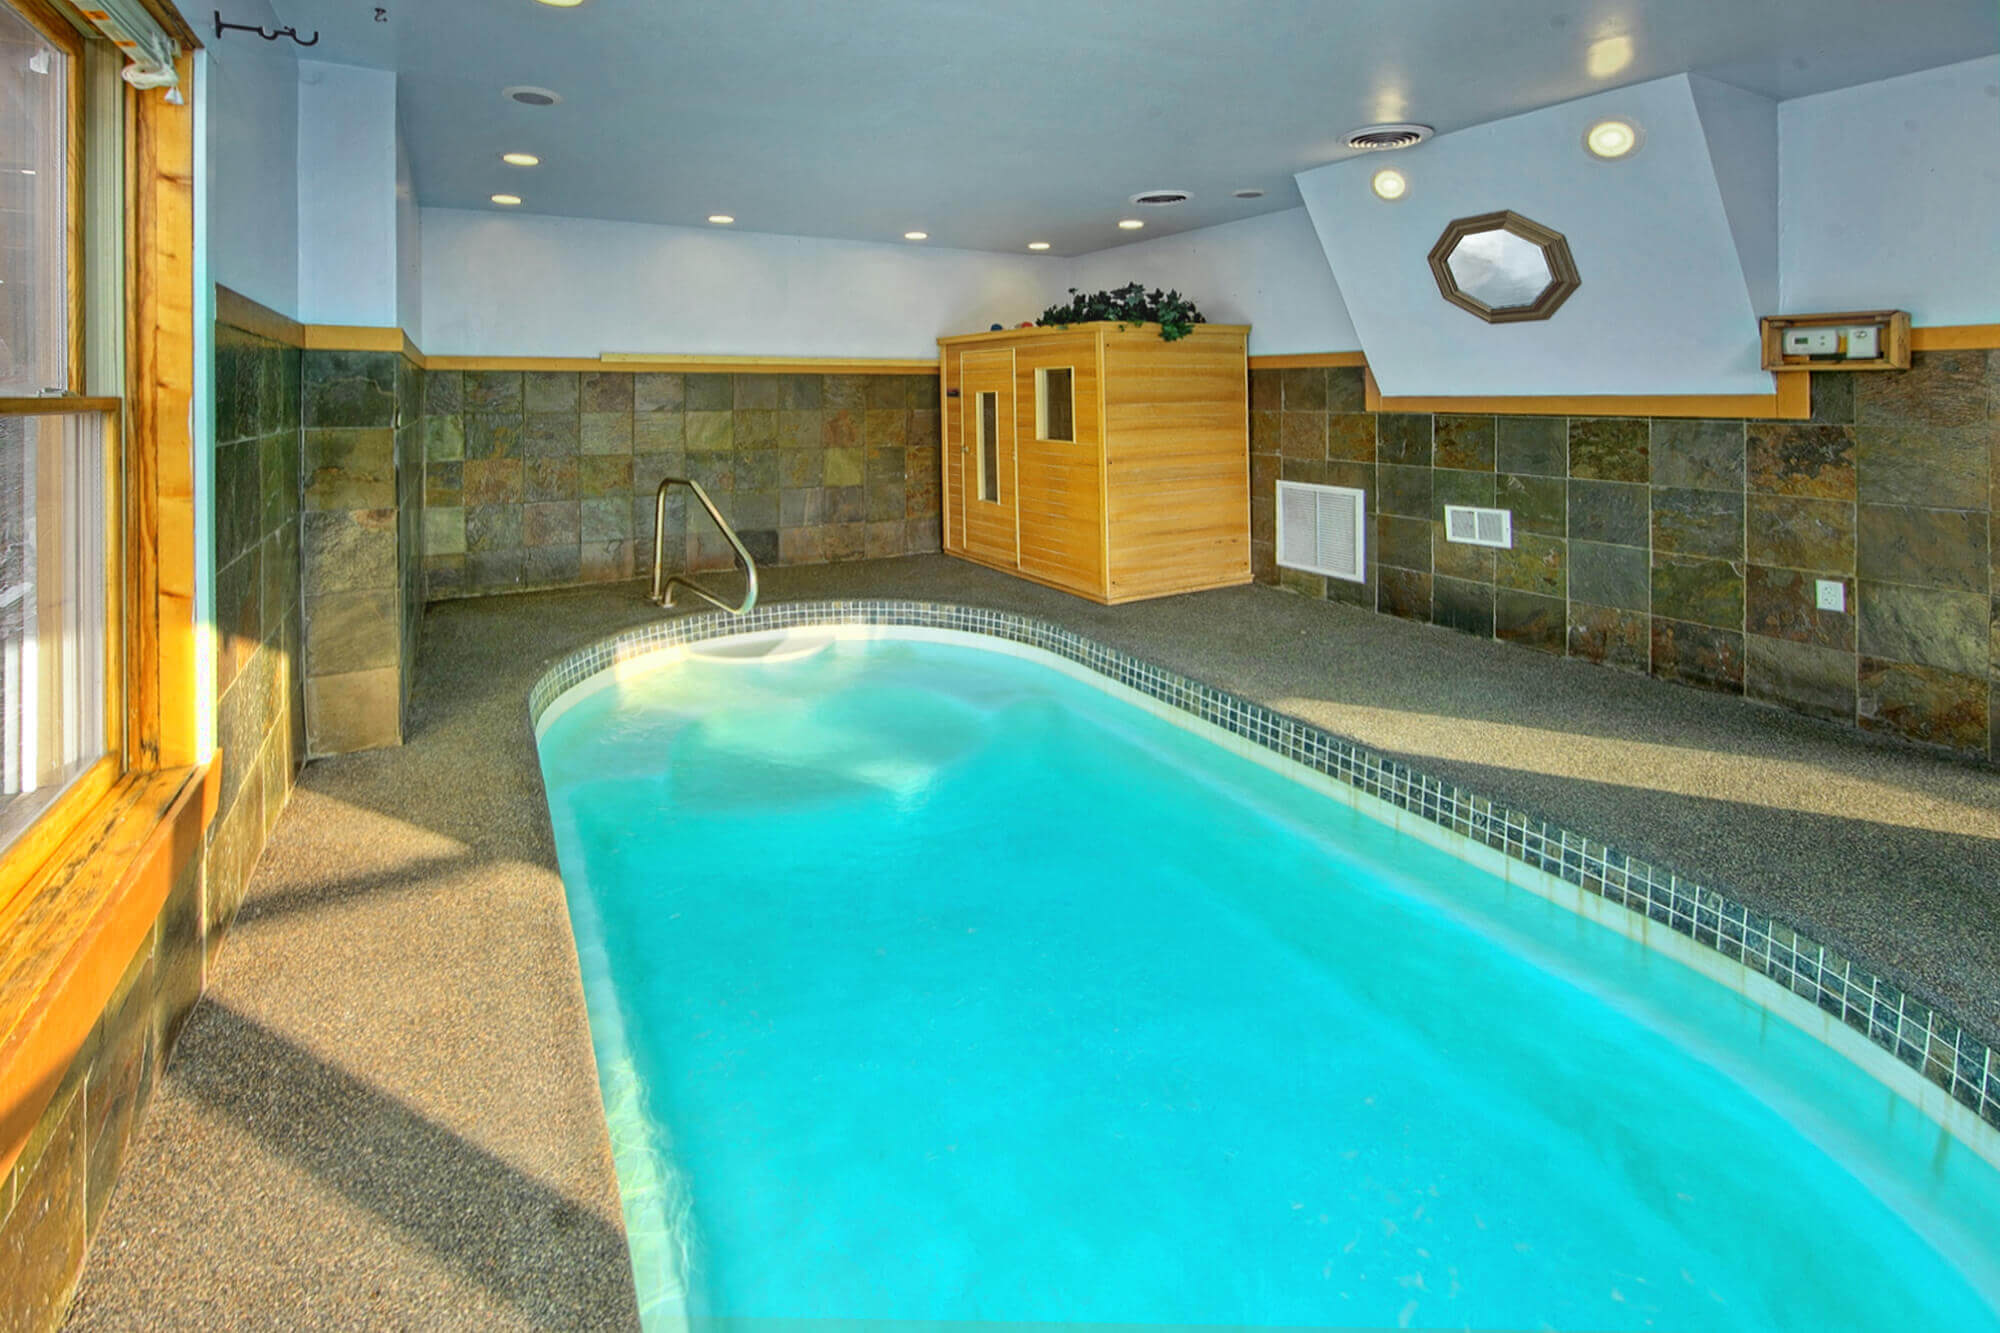 cabins gatlinburg private theater interested luxury this with today people cabin room pools in indoor pool